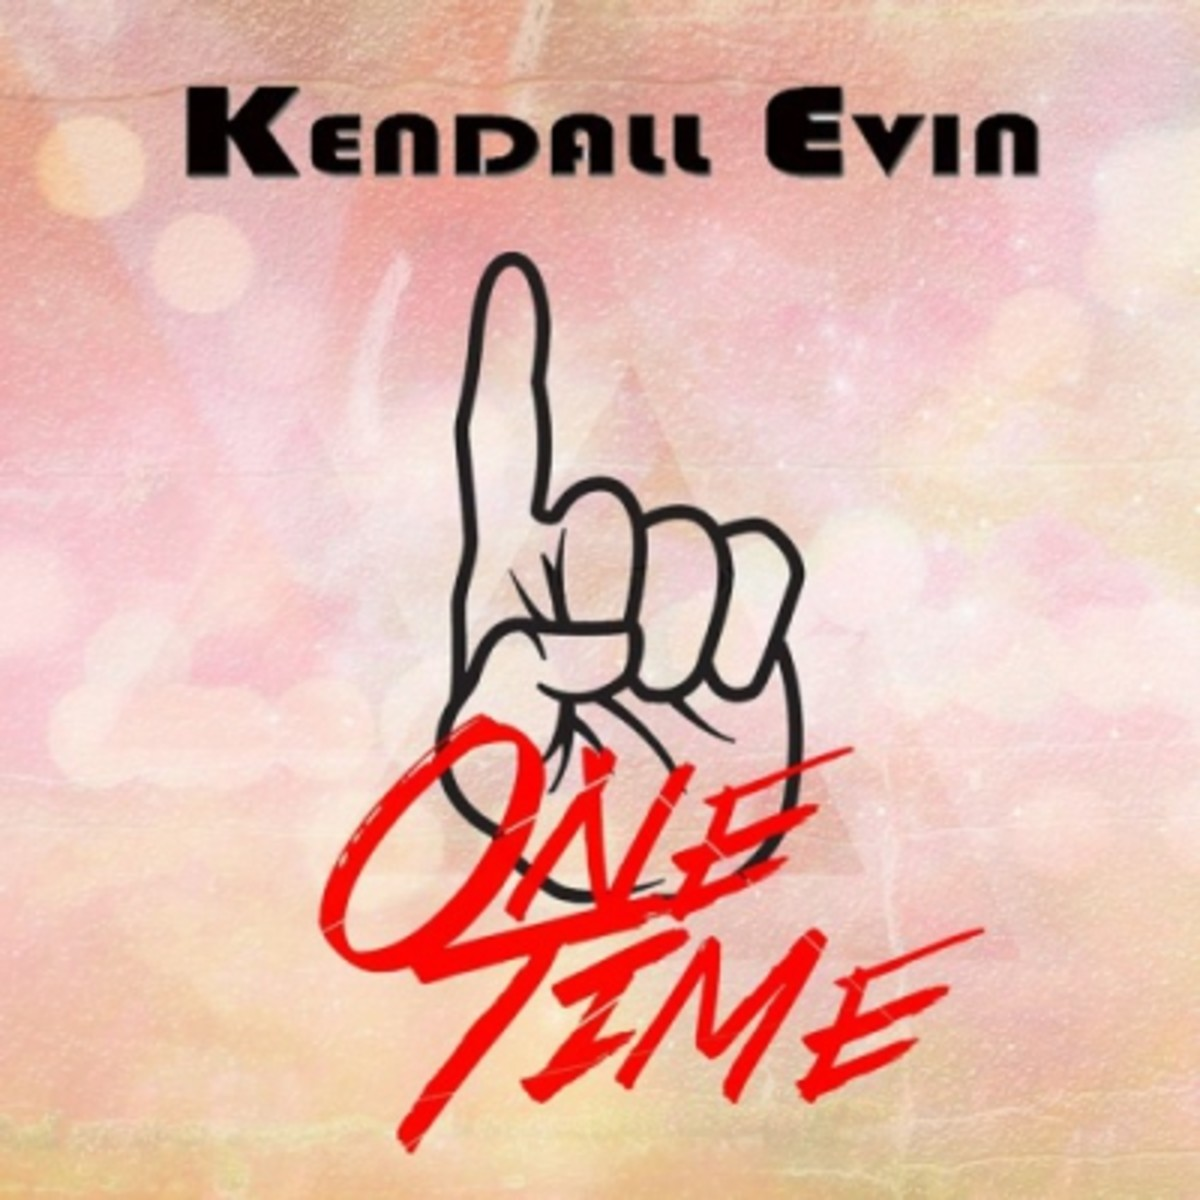 kendall-evin-one-time.jpg